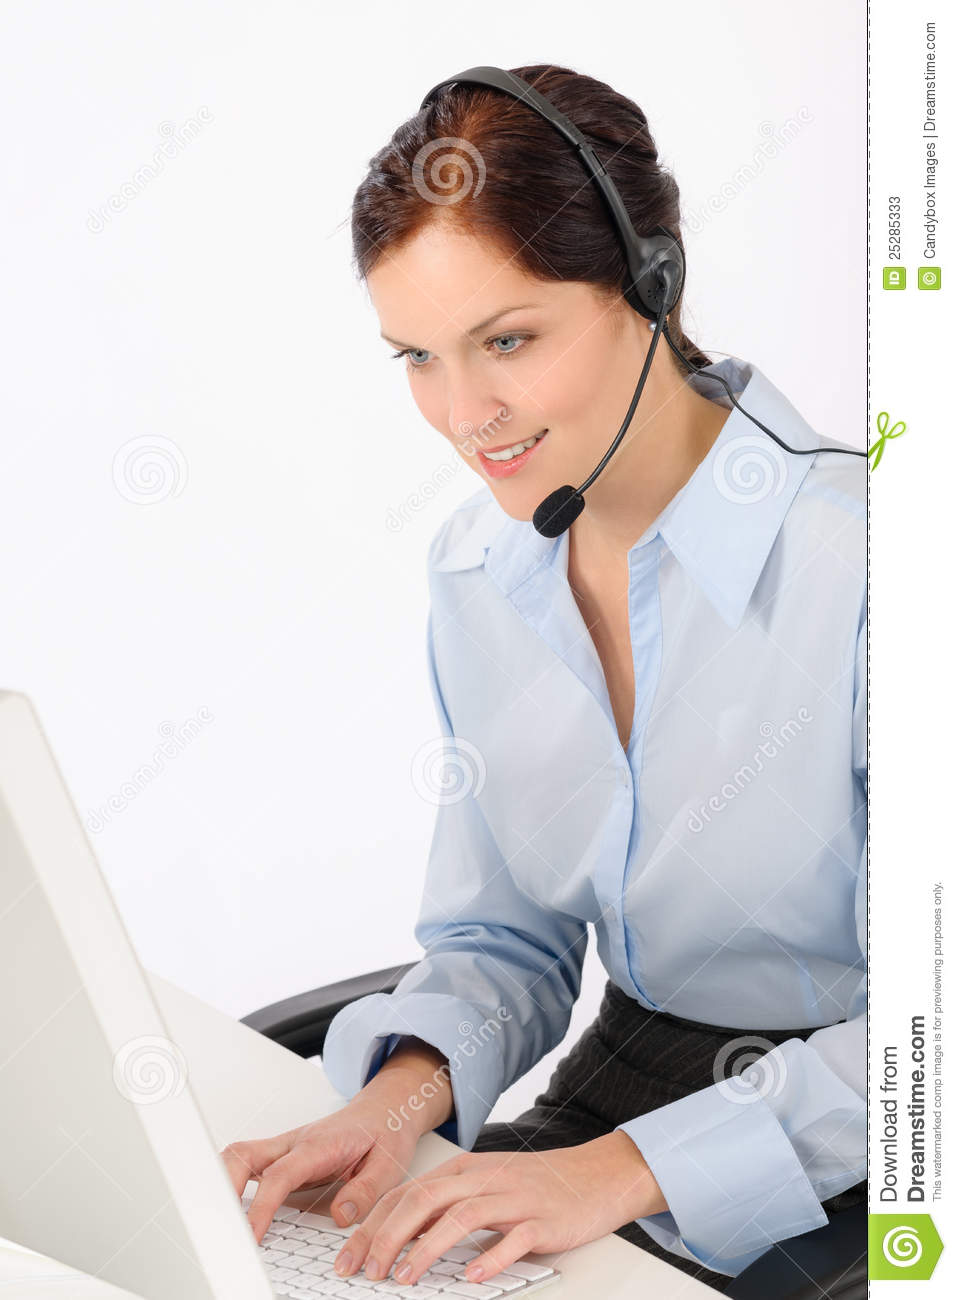 Friendly Help Desk Woman Typing Computer Stock Image ...